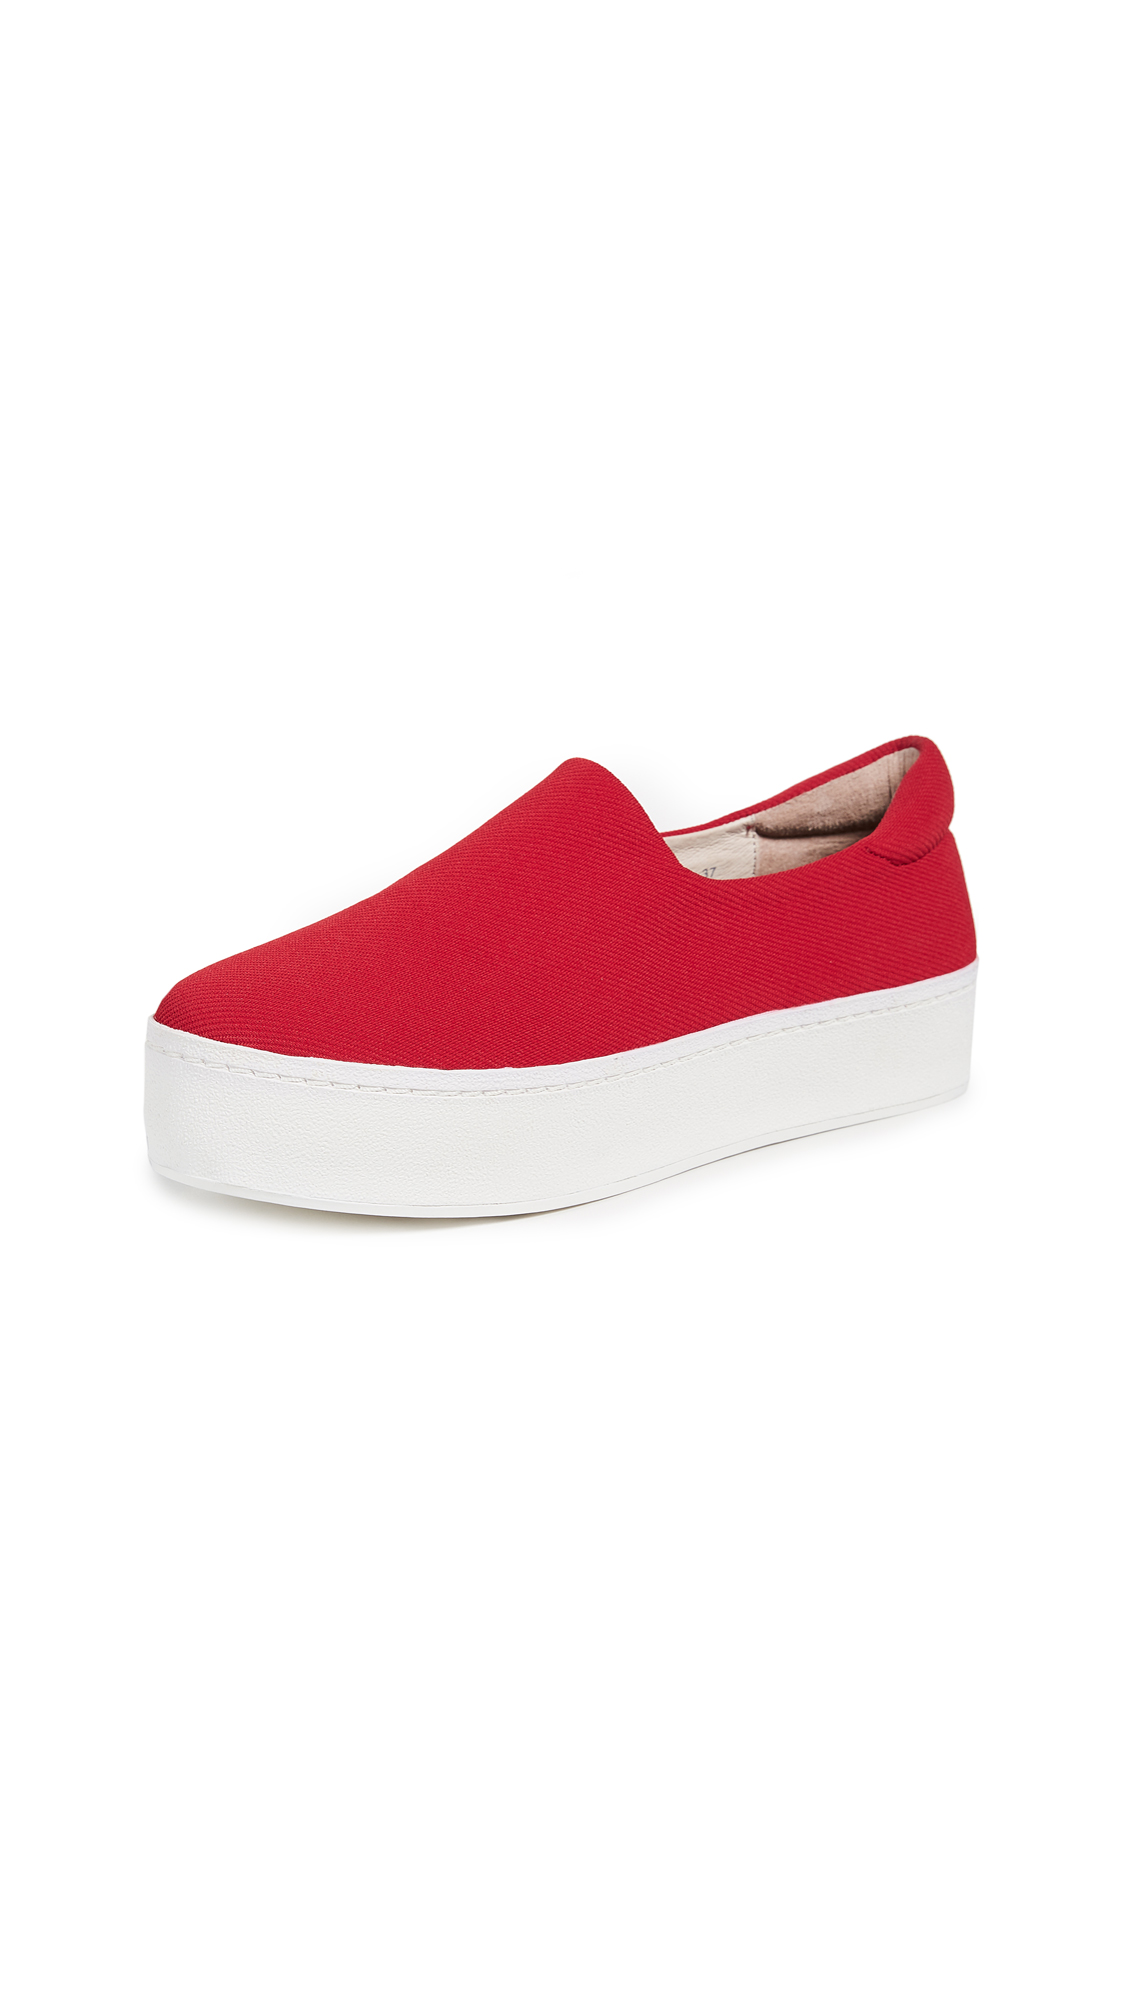 Opening Ceremony Cici Slip On Platform Sneakers - Red